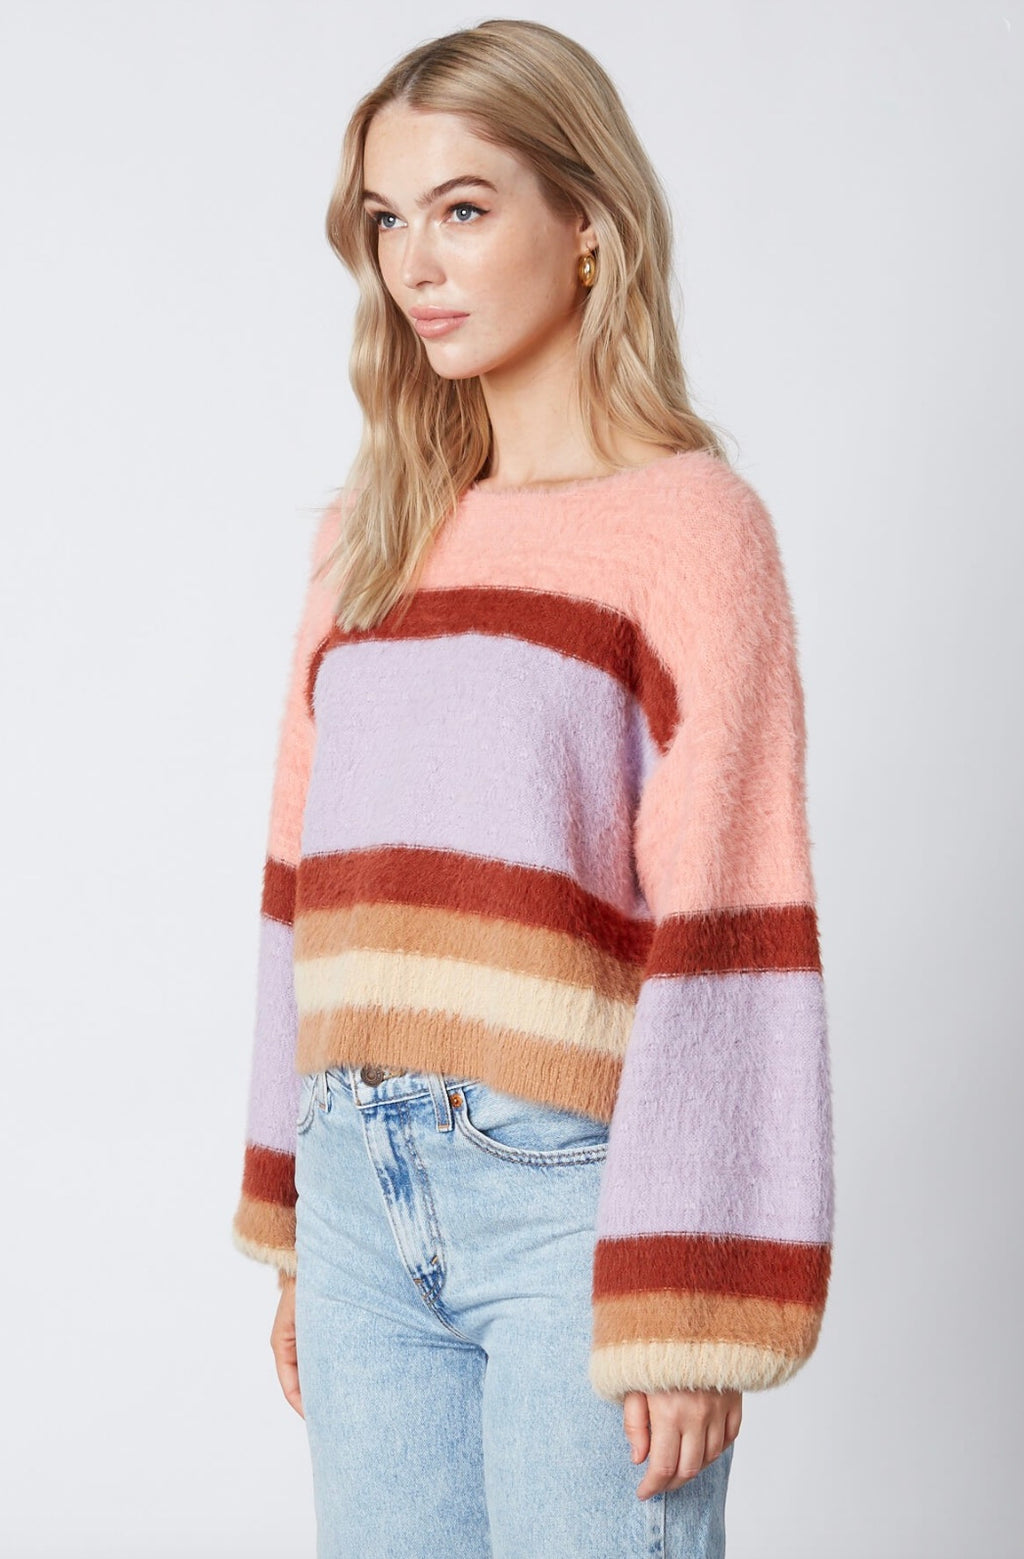 Get With It Sweater